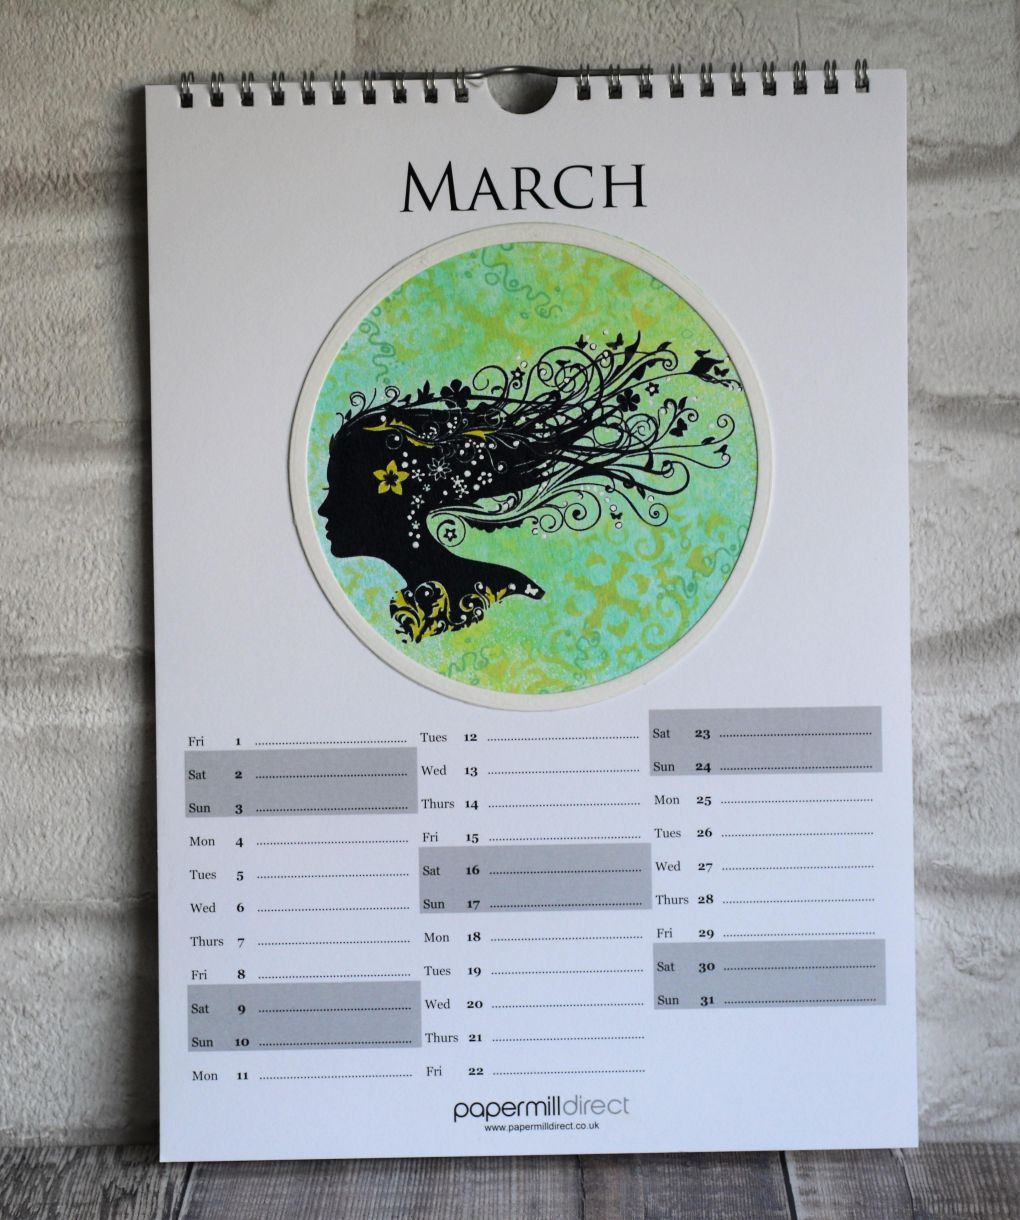 March Calendar Page 1